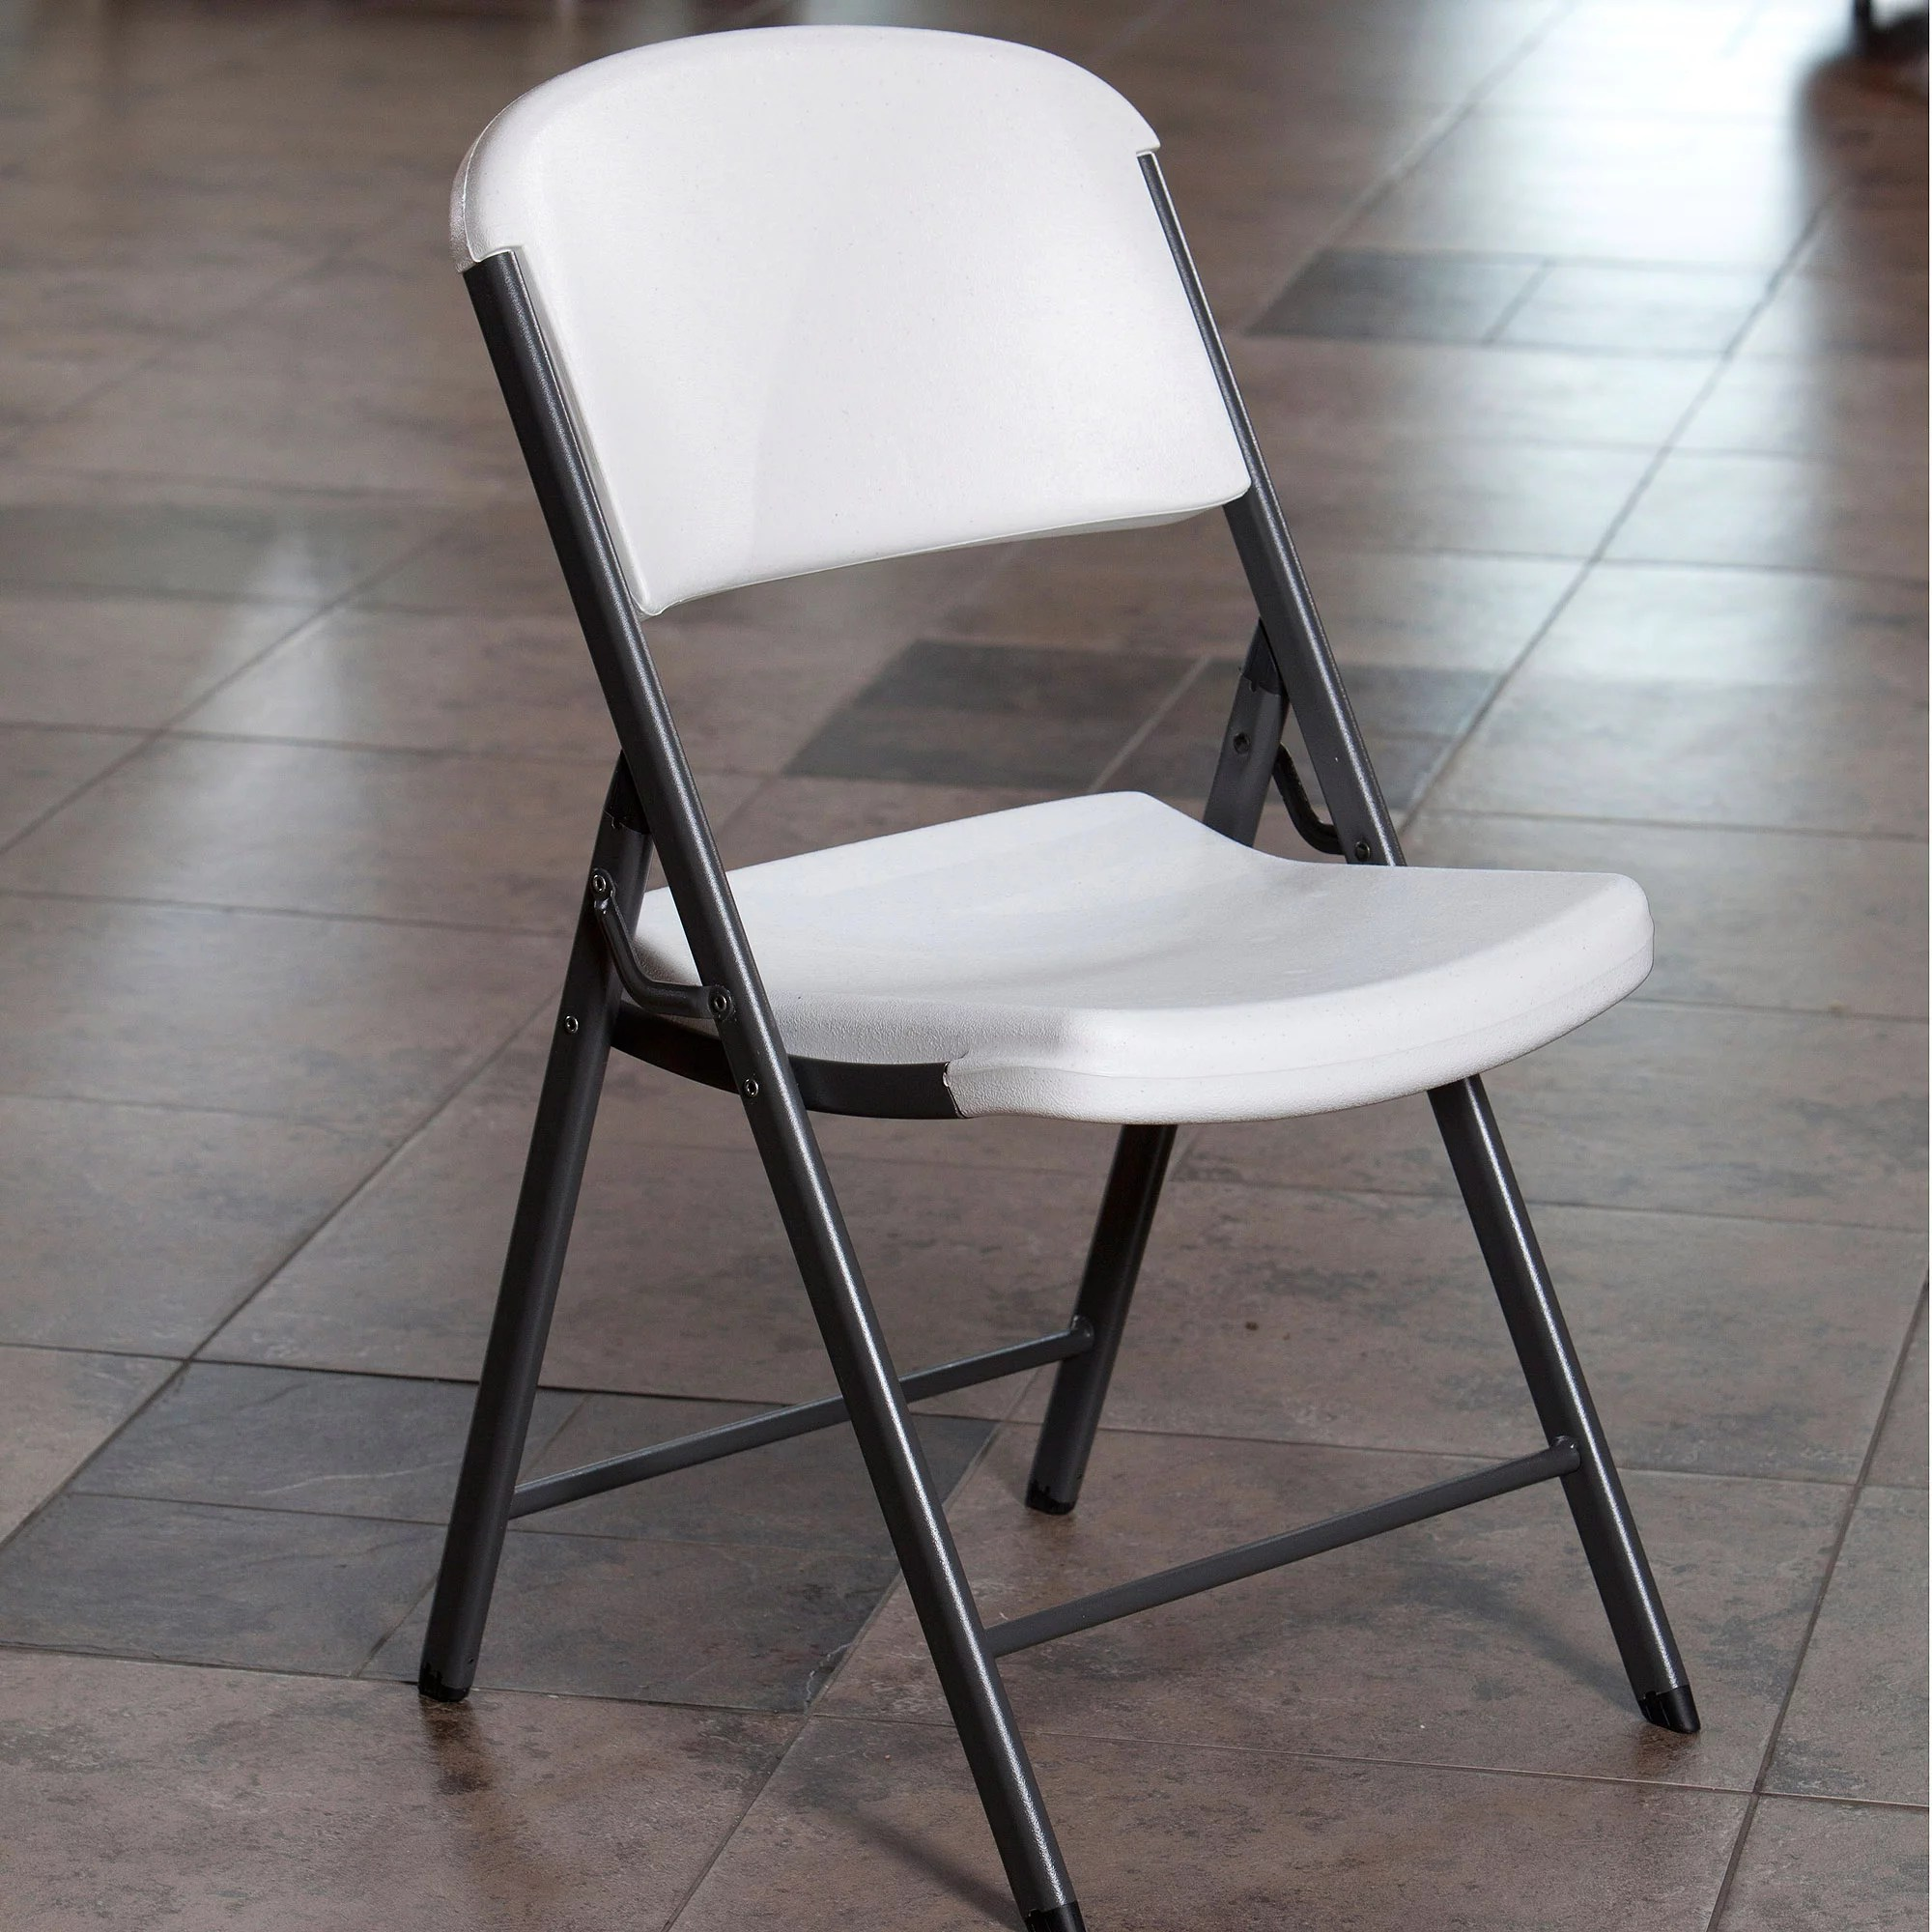 Lifetime Chair Mainstays Steel Folding Chair Black